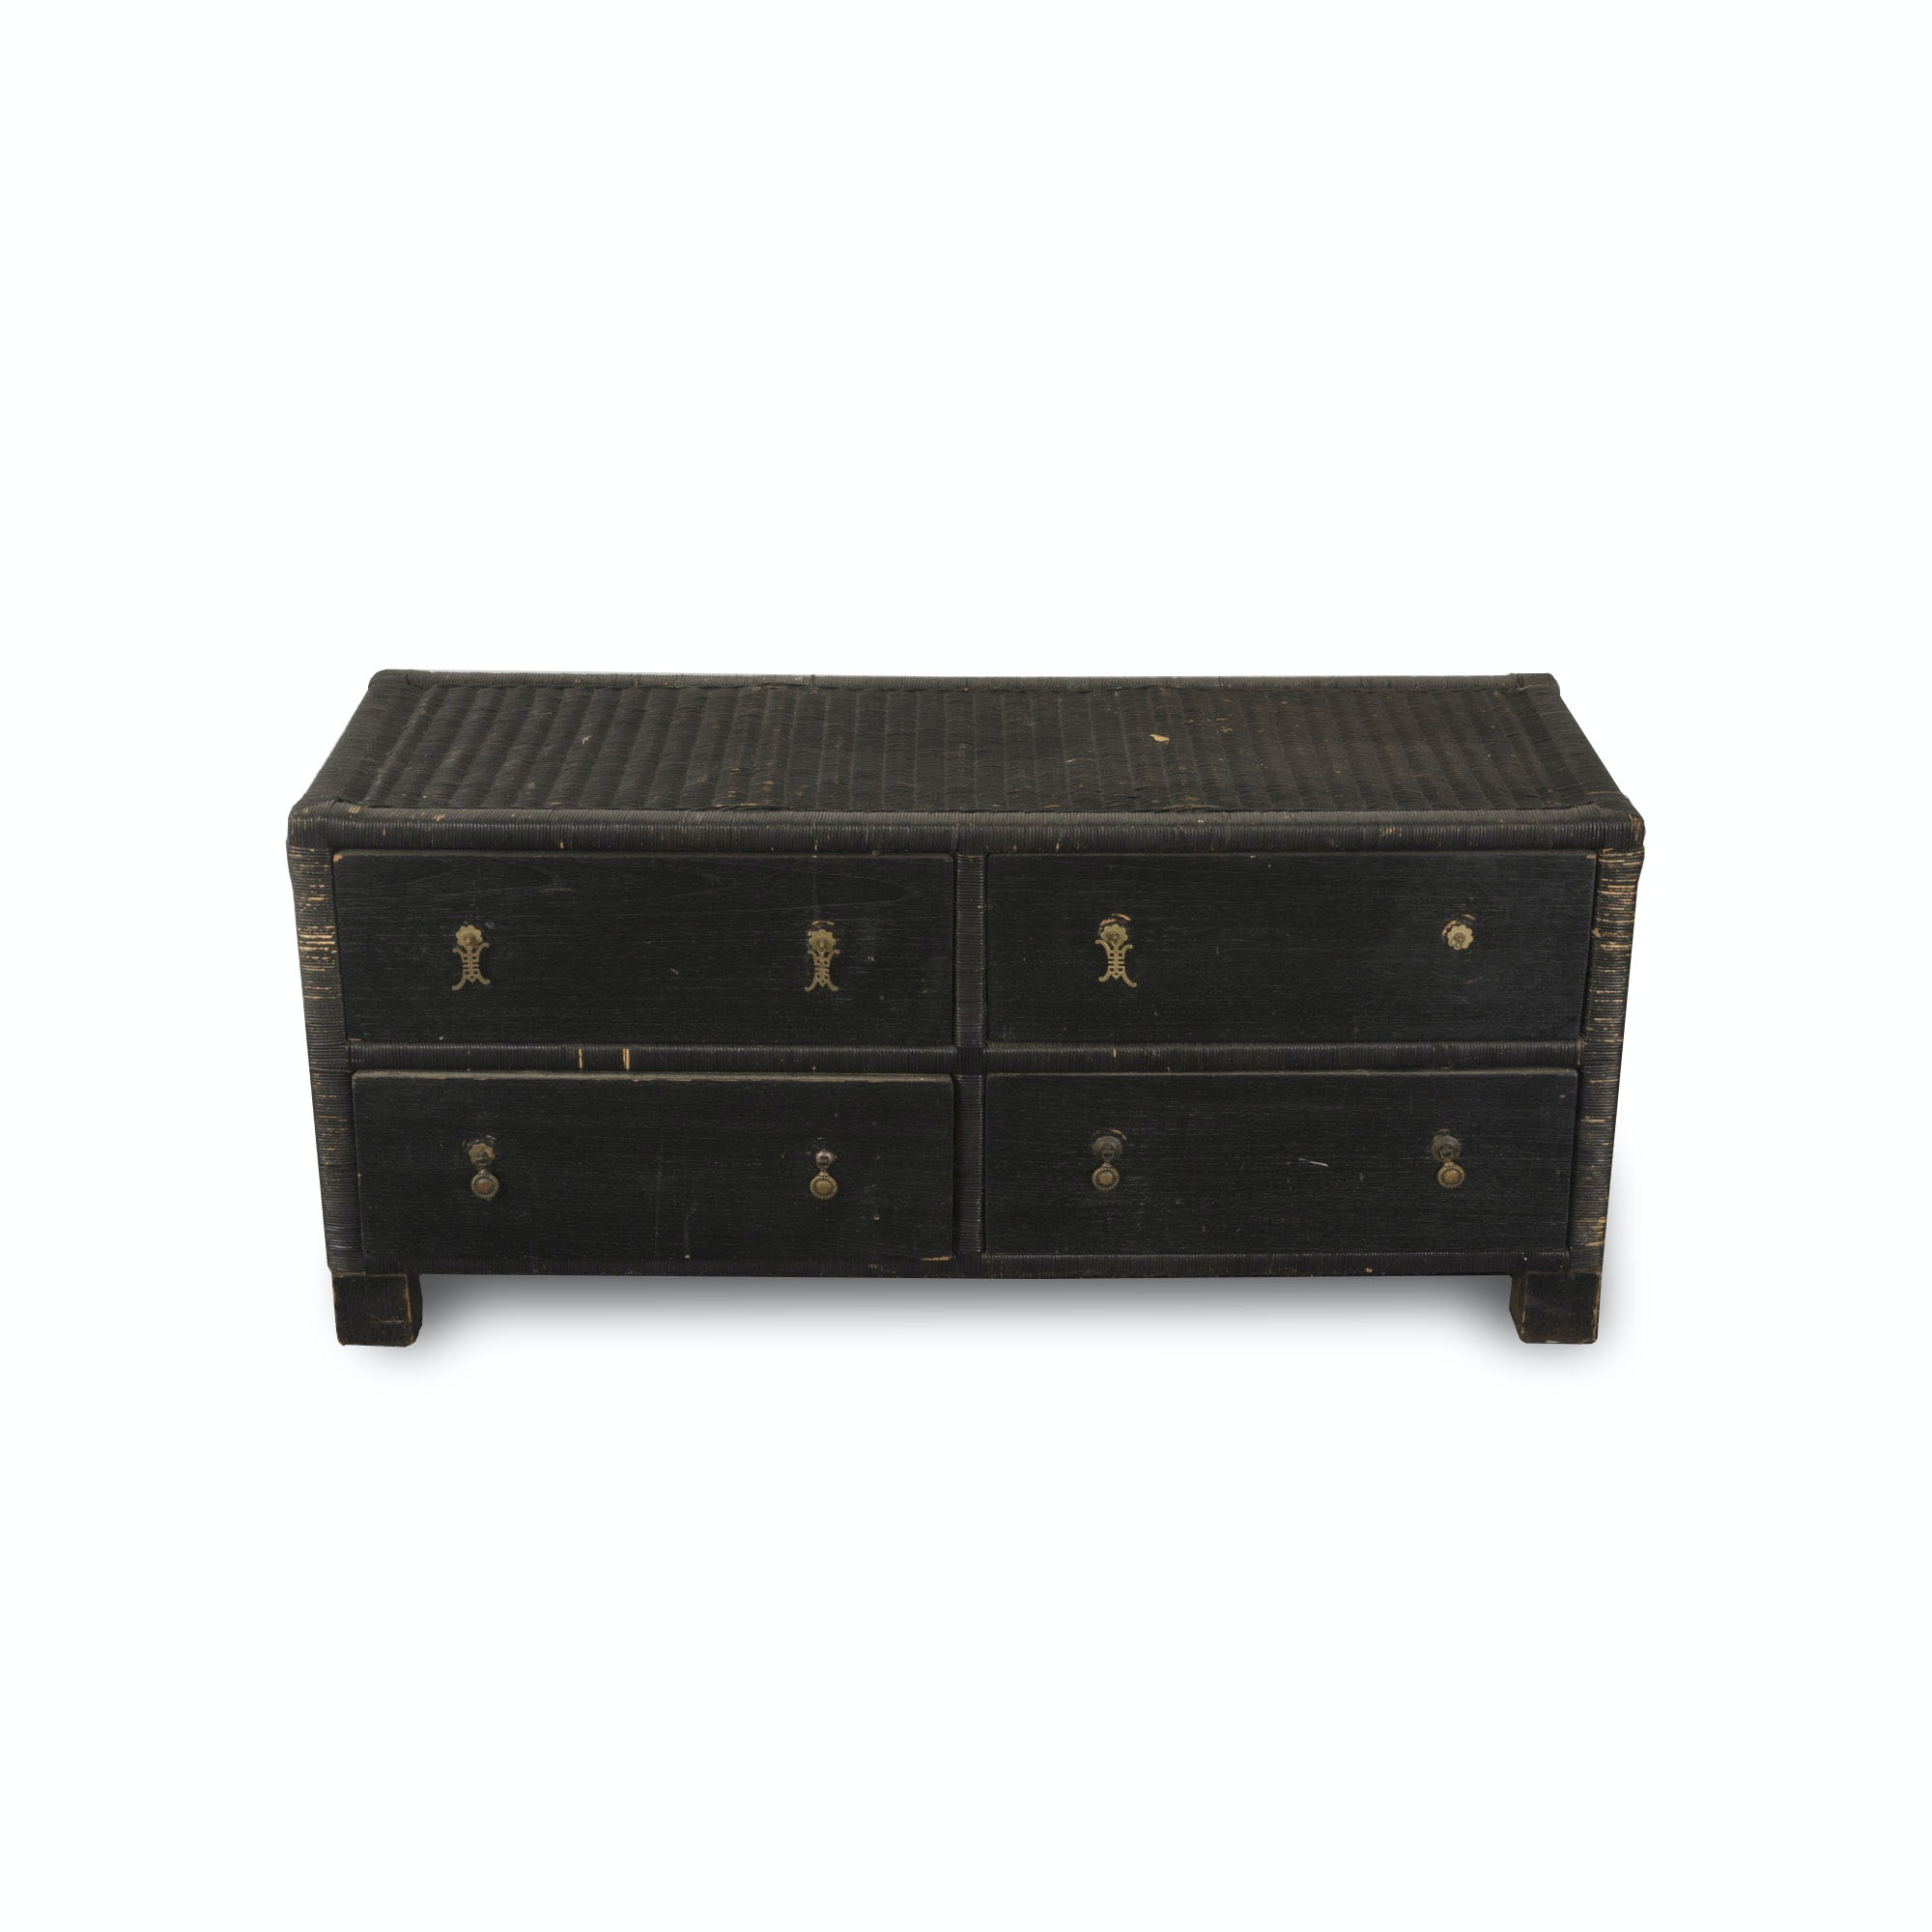 Asian Style Black Wicker Chest of Drawers